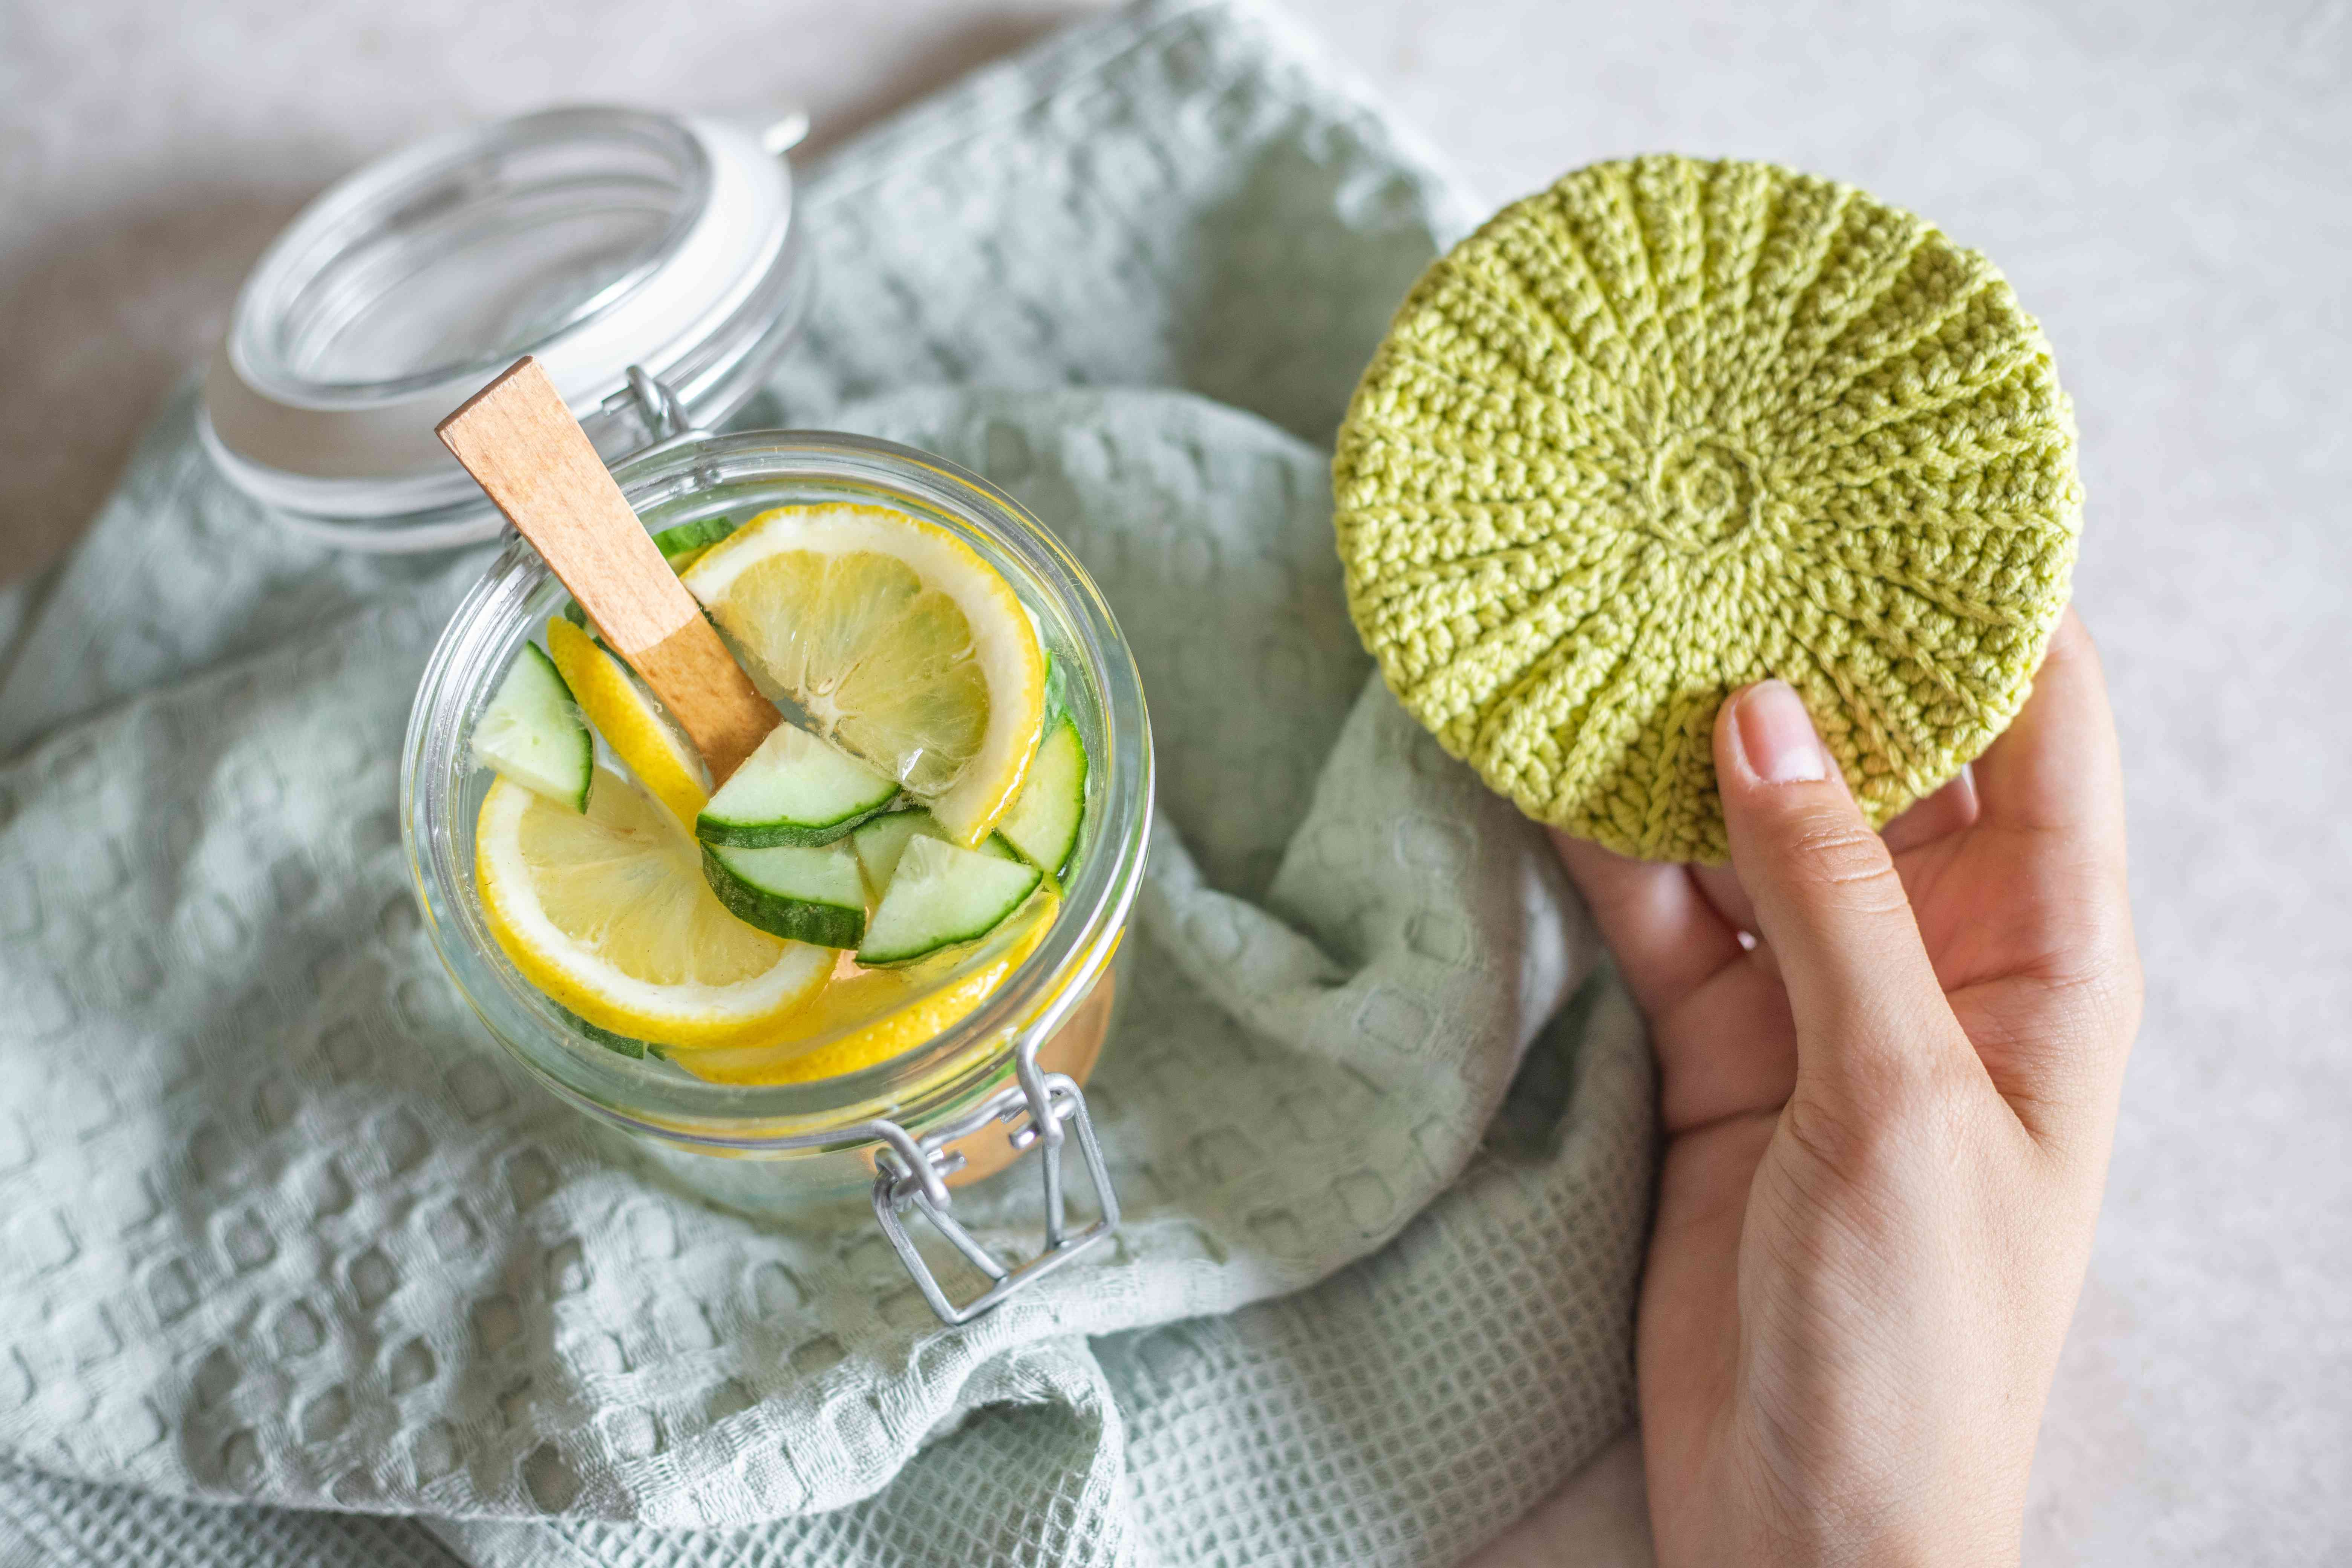 diy cucumber and lemon slice toner in glass lidded jar next to hand with homemade scrub